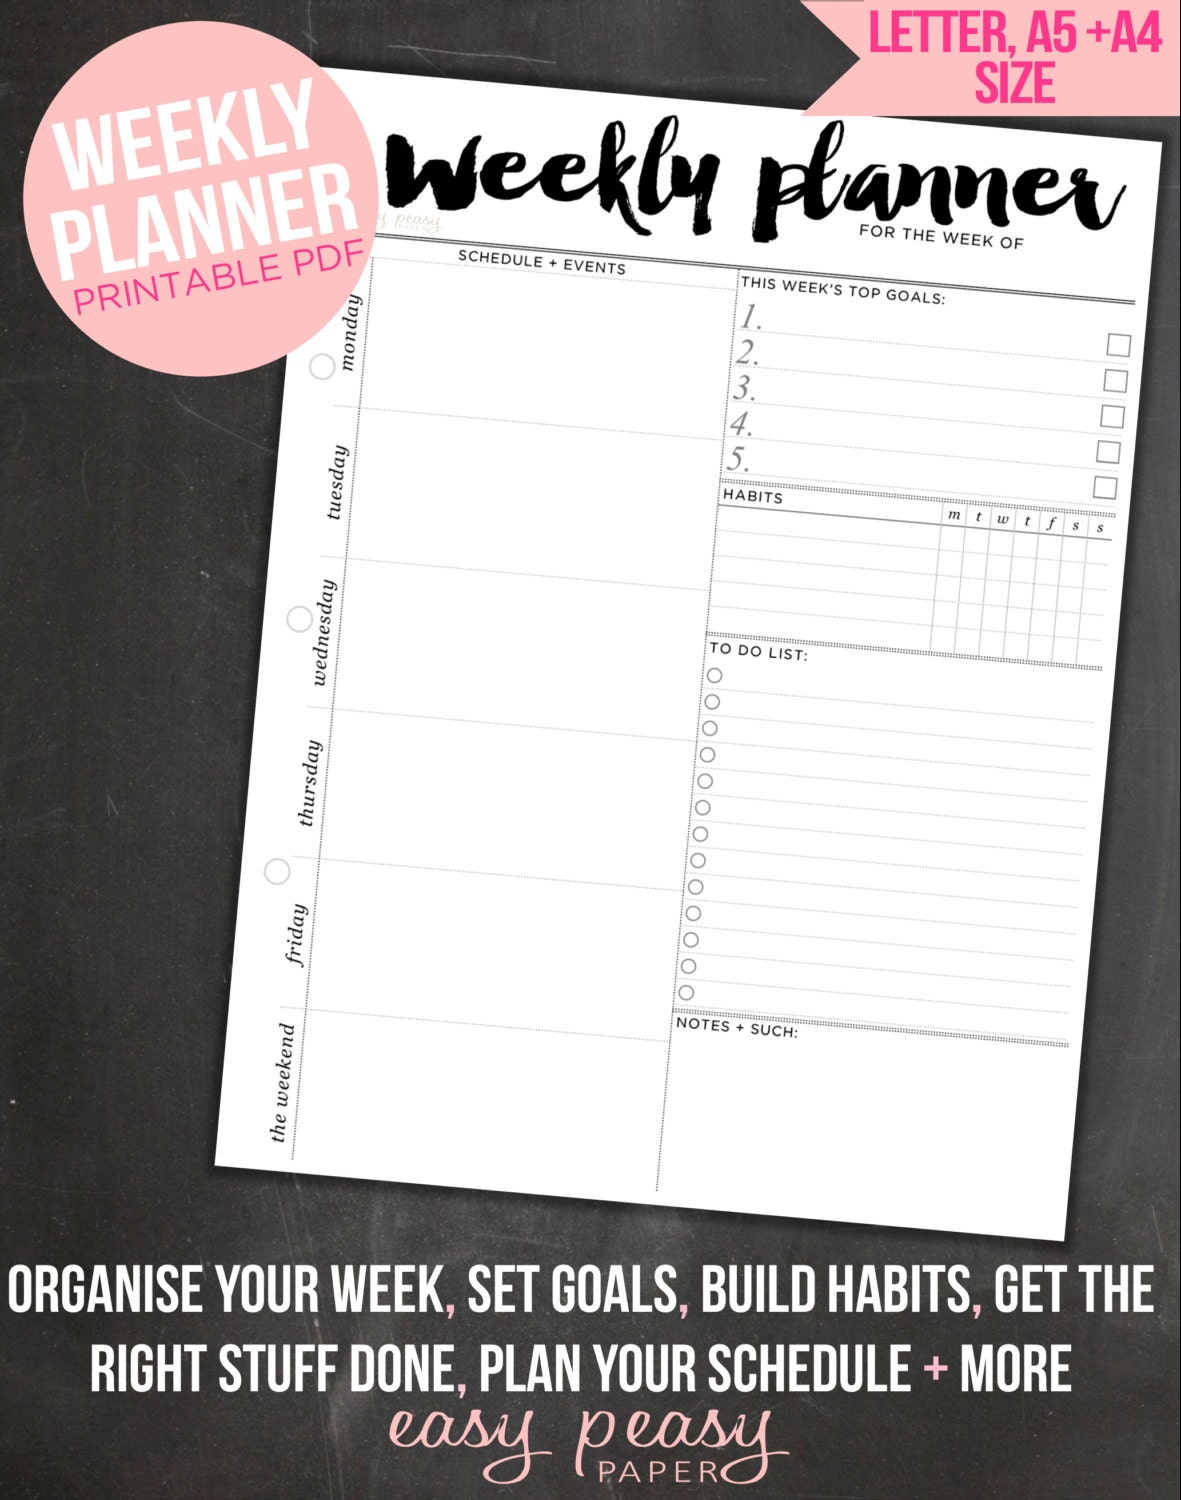 It's just a photo of Gorgeous Weekly Organizer Printable